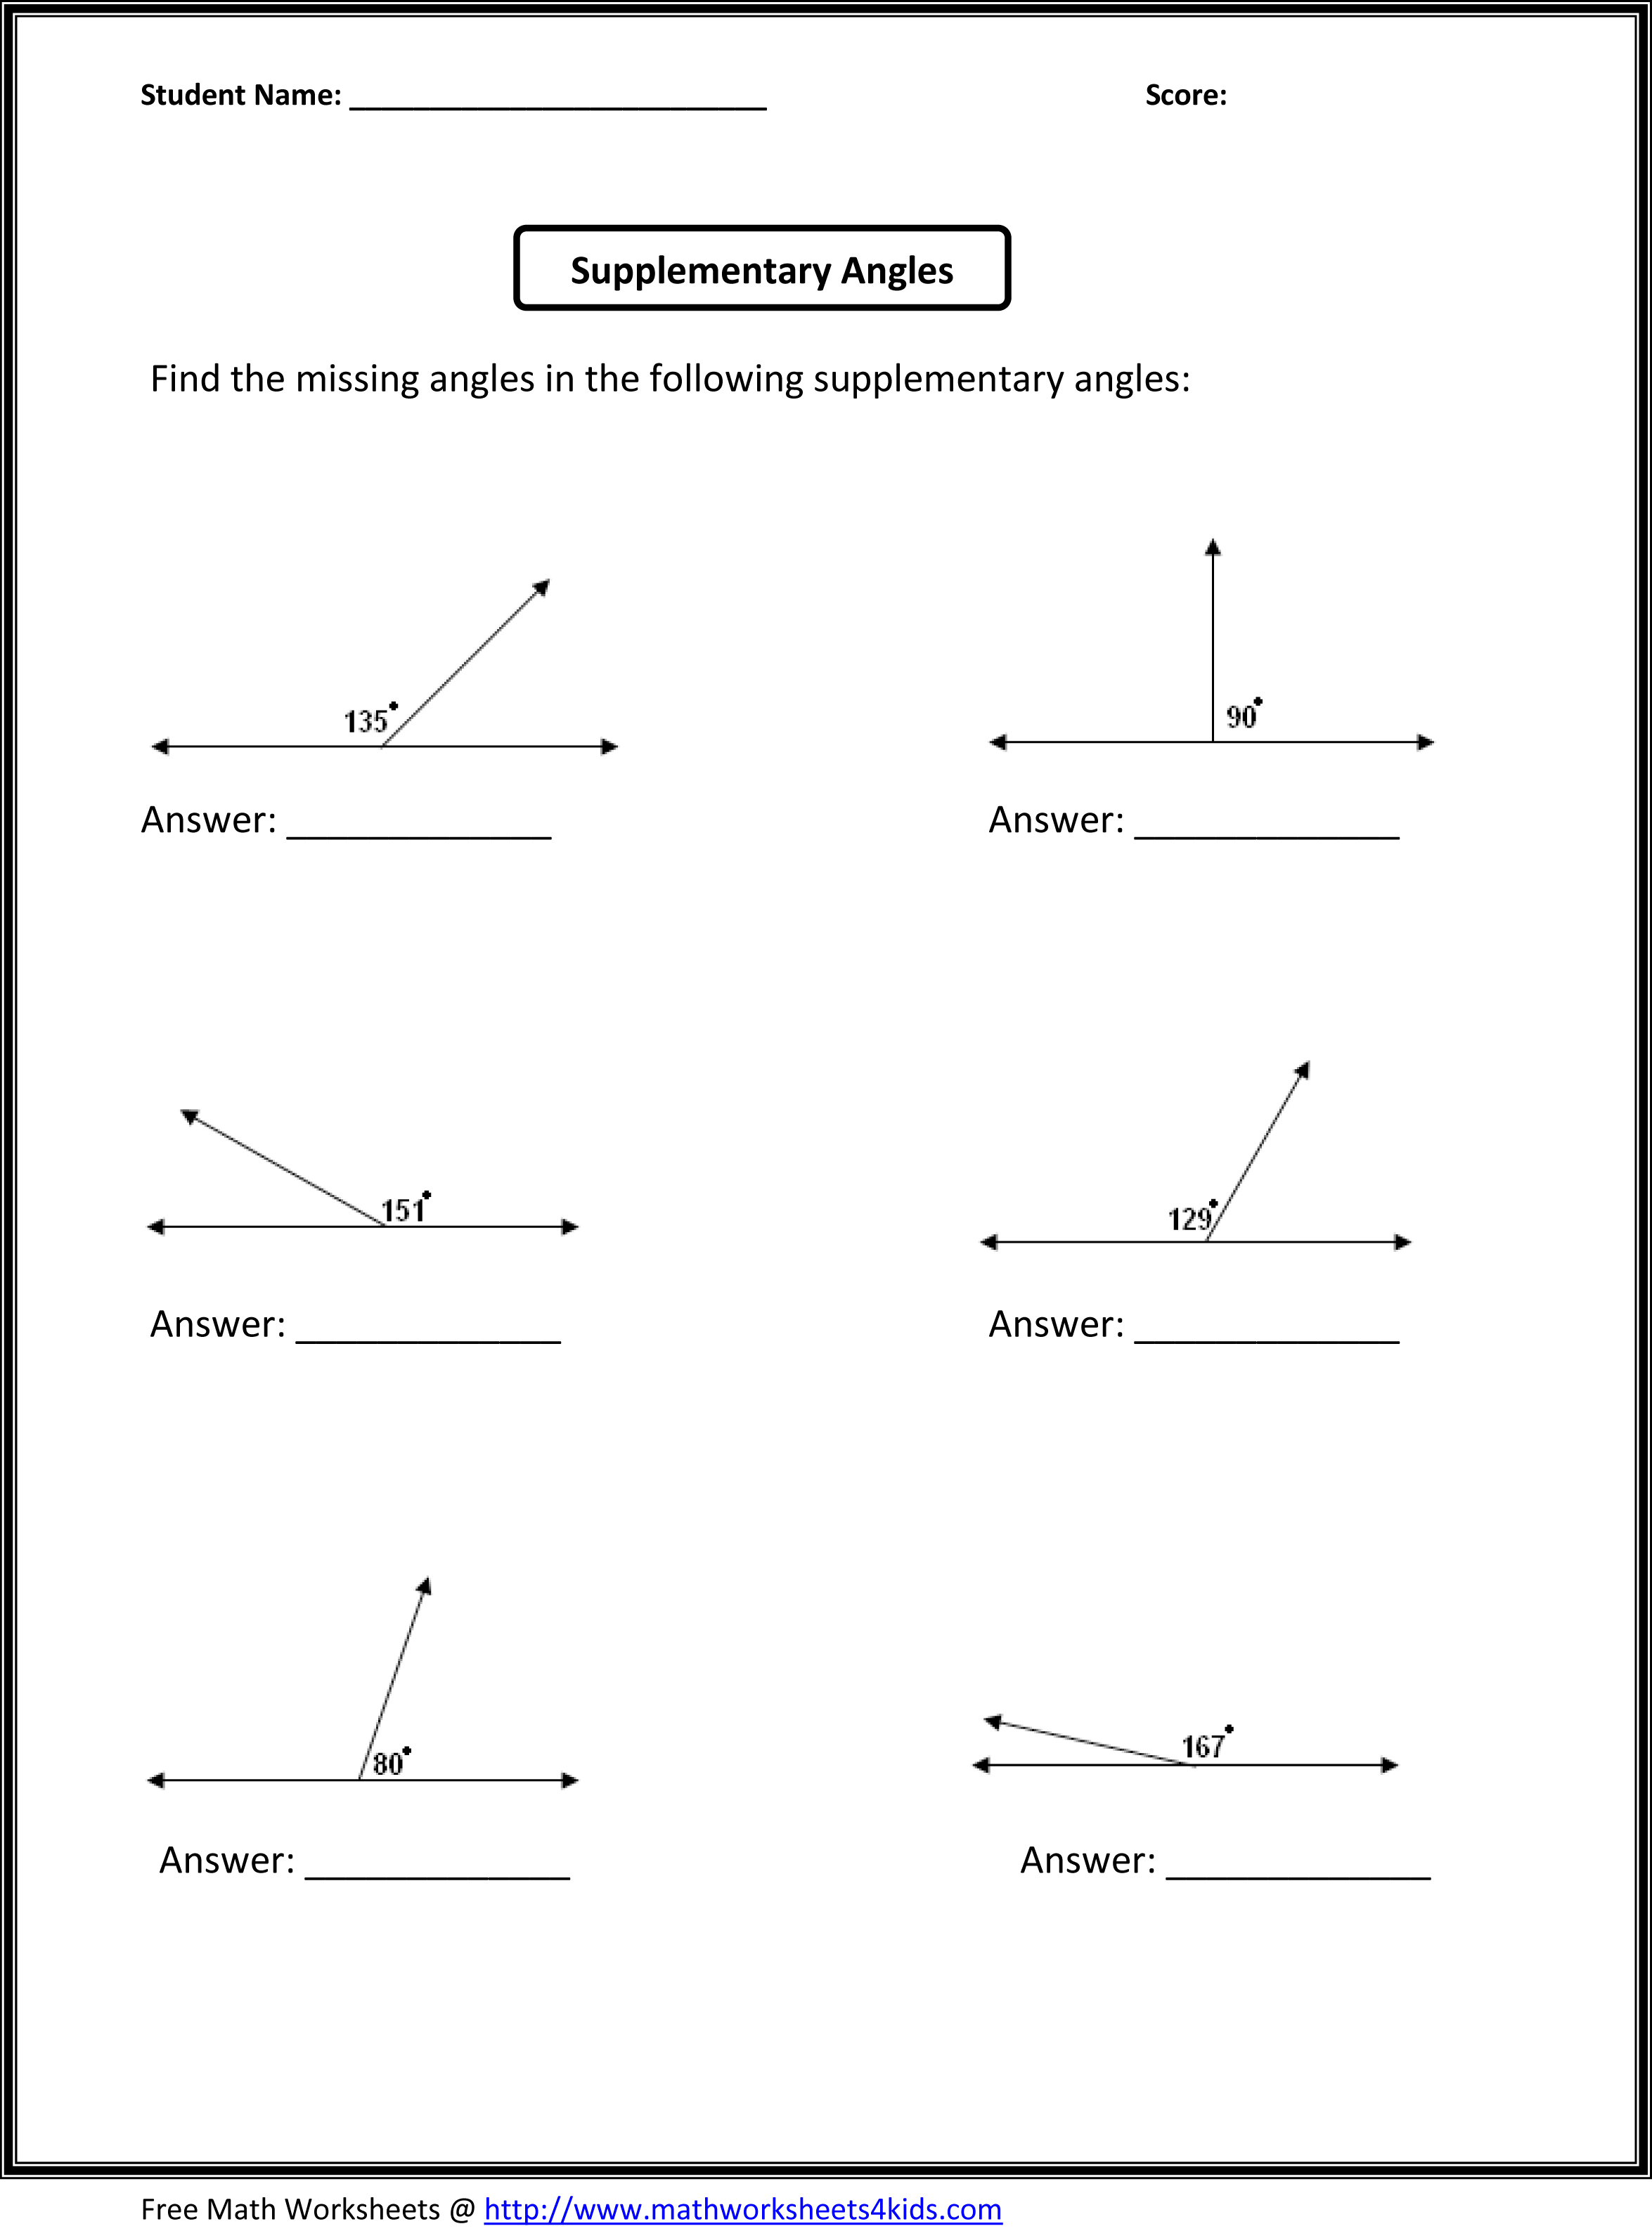 Supplementary Angles.